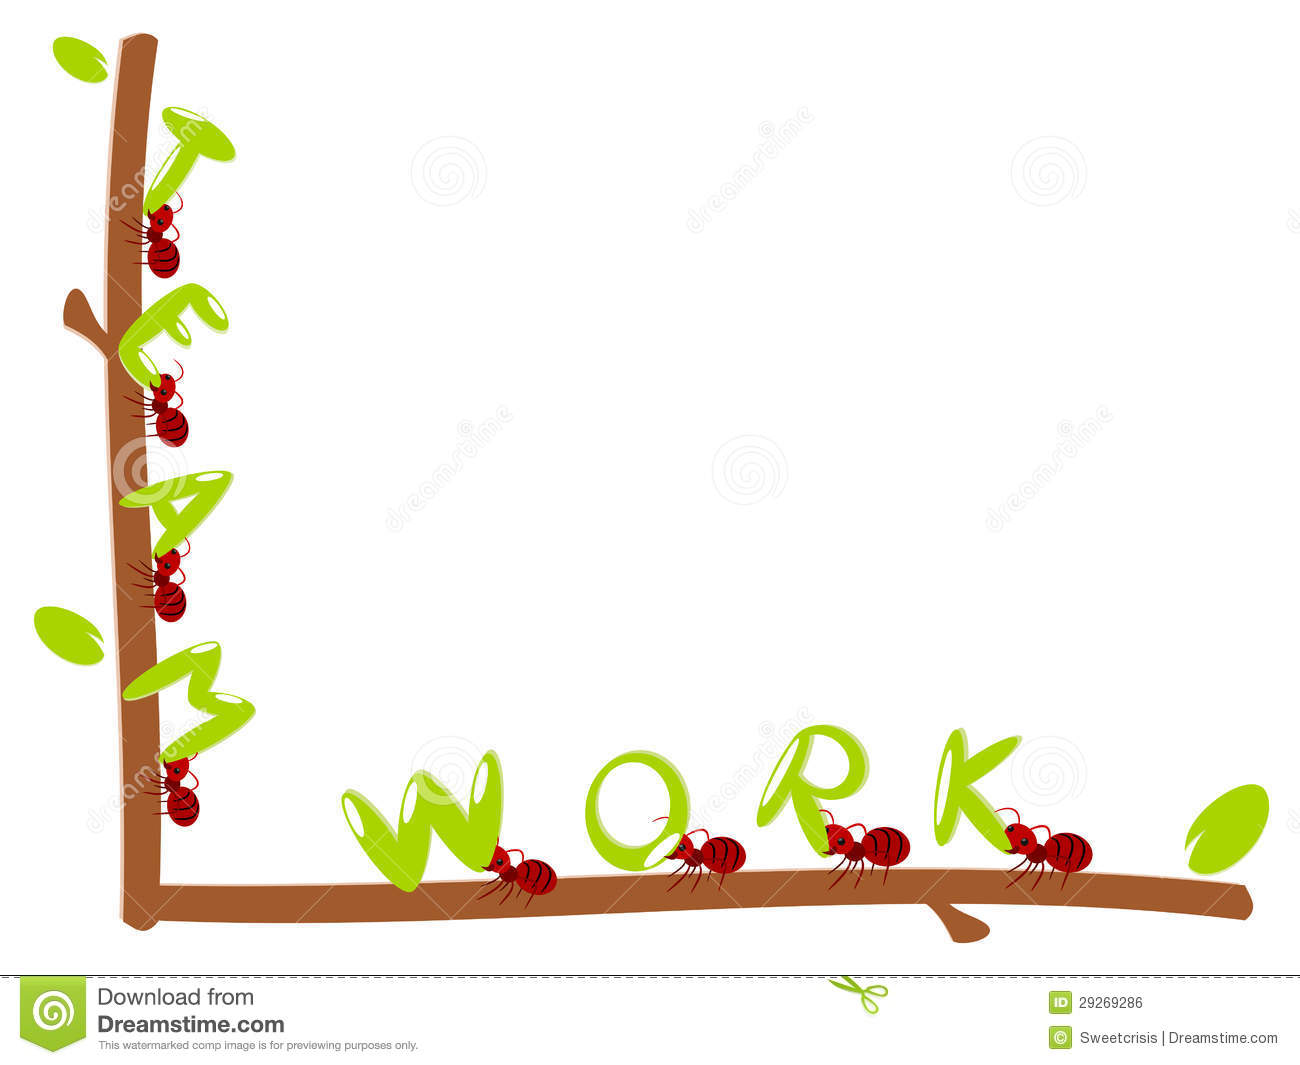 Red Ants Text Teamwork Illustration Royalty Free Stock Image.